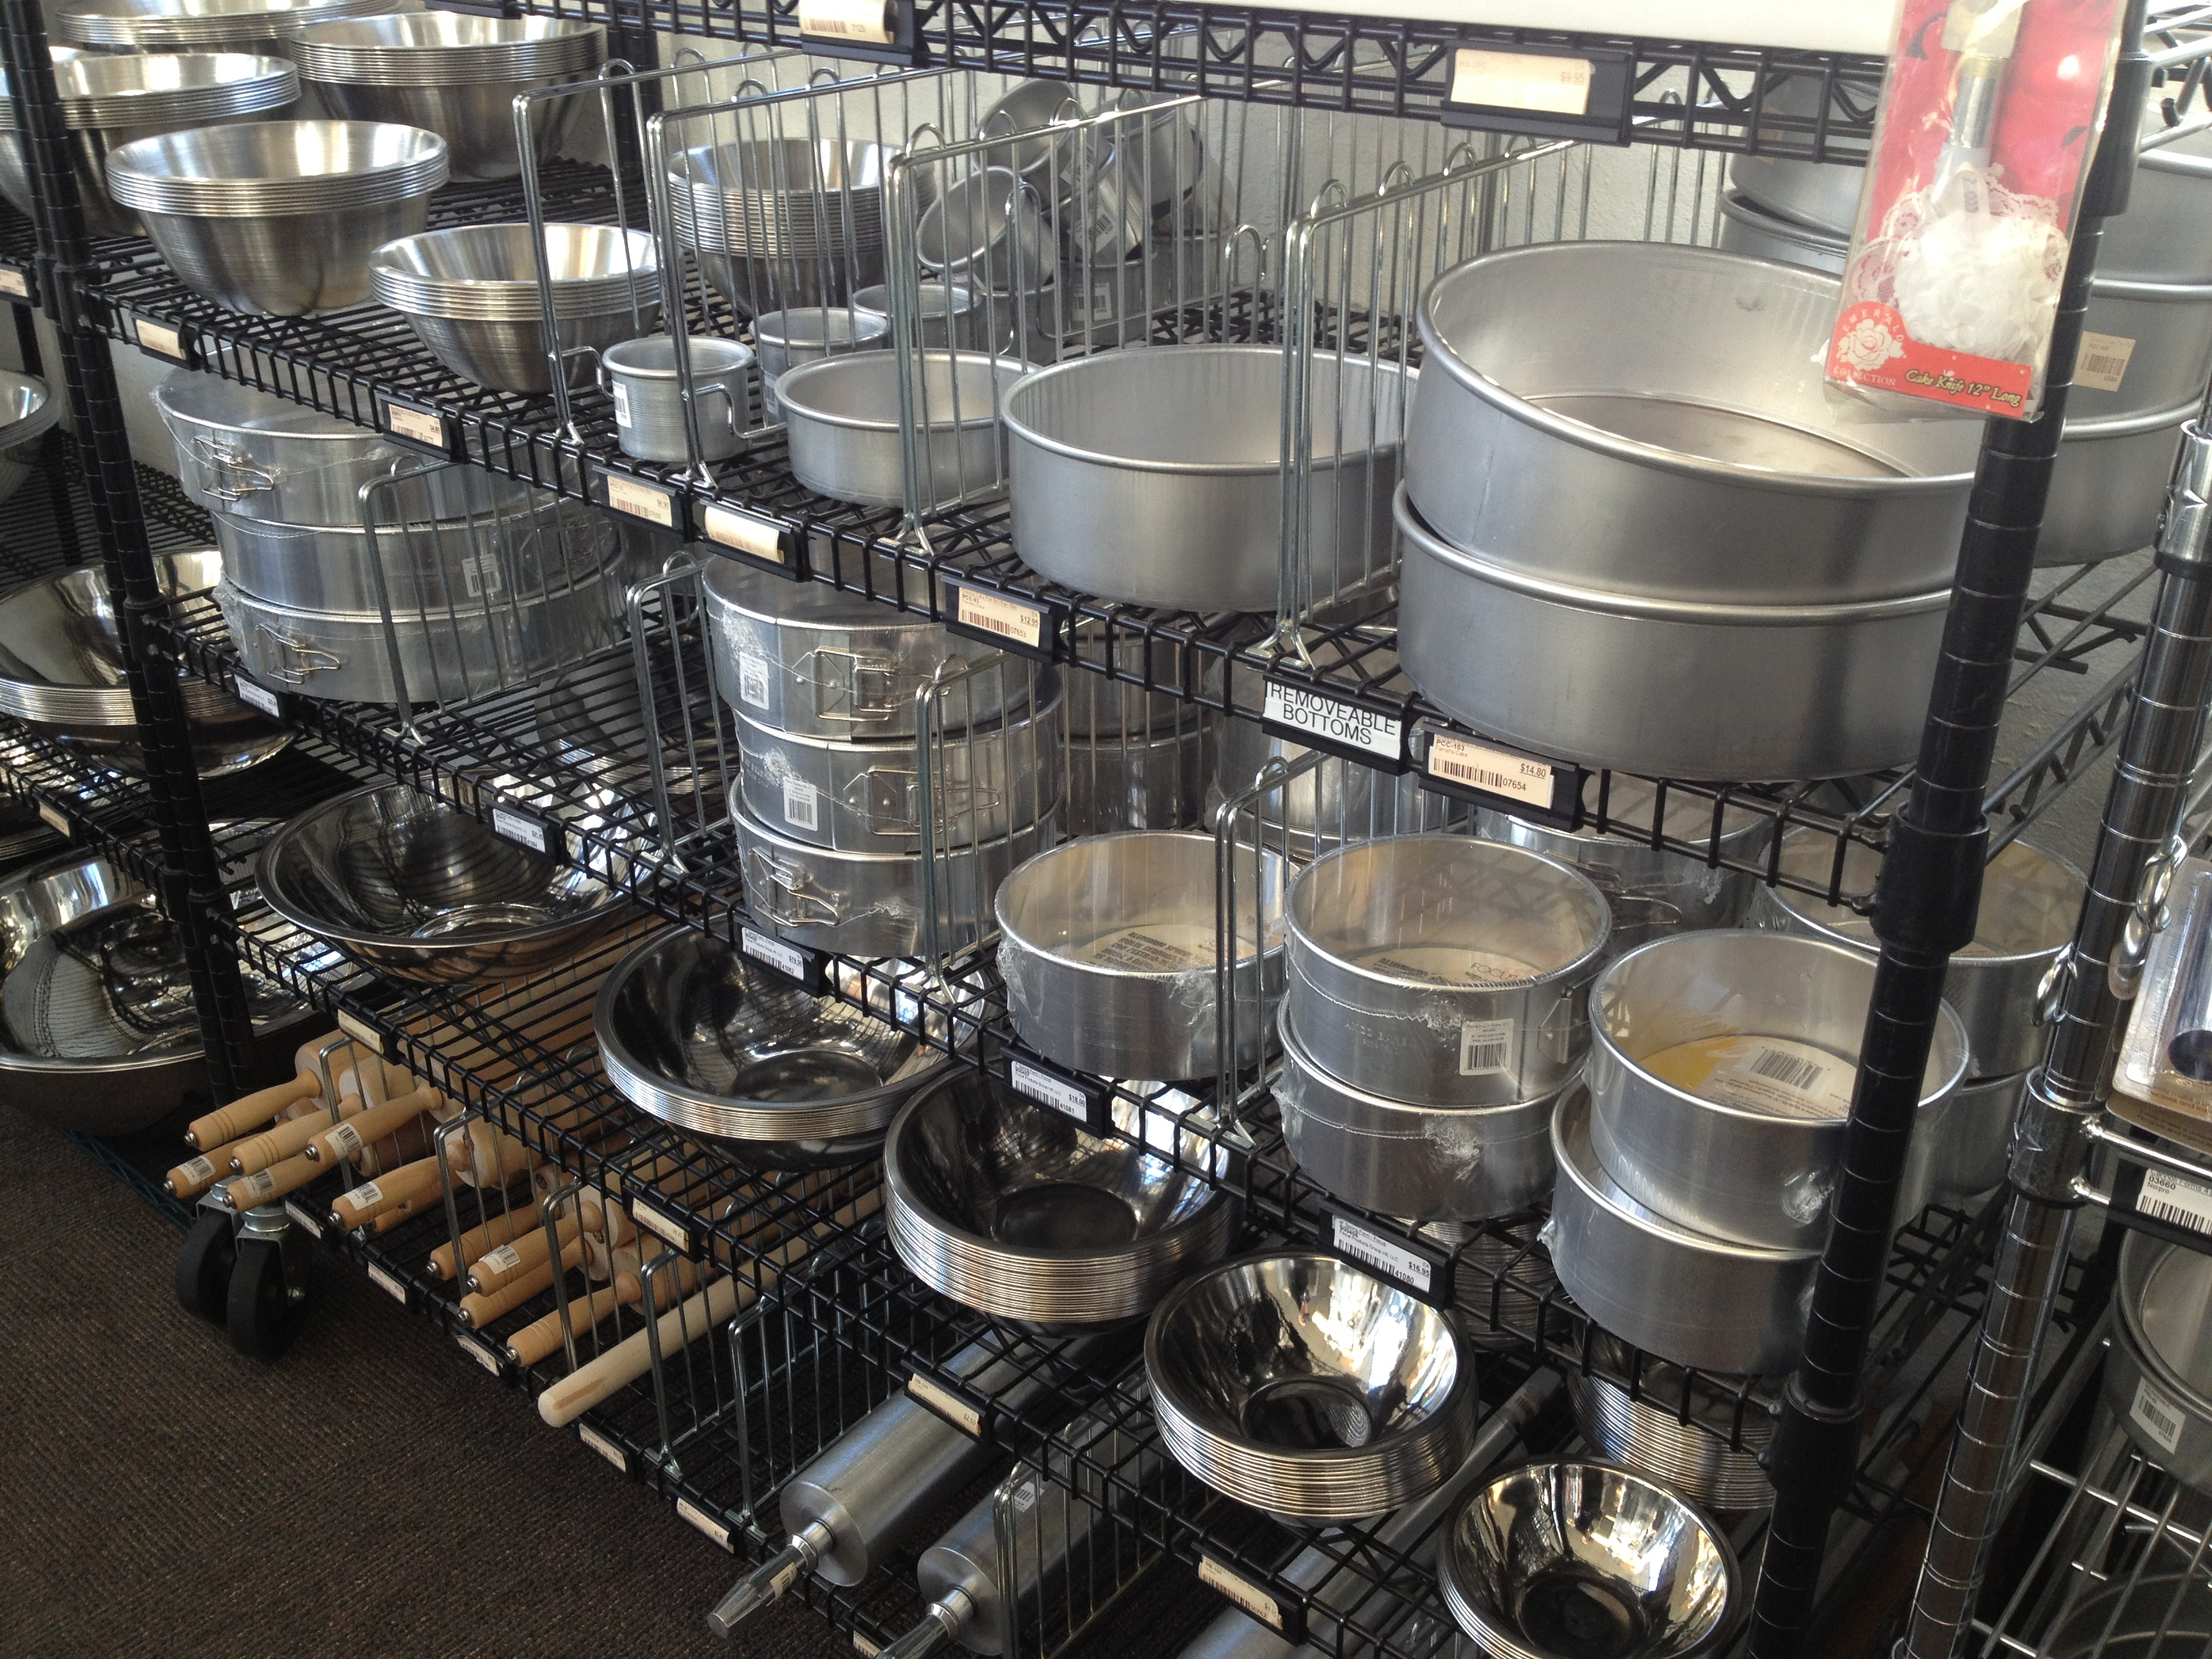 Washington State Commercial Kitchen Requirements